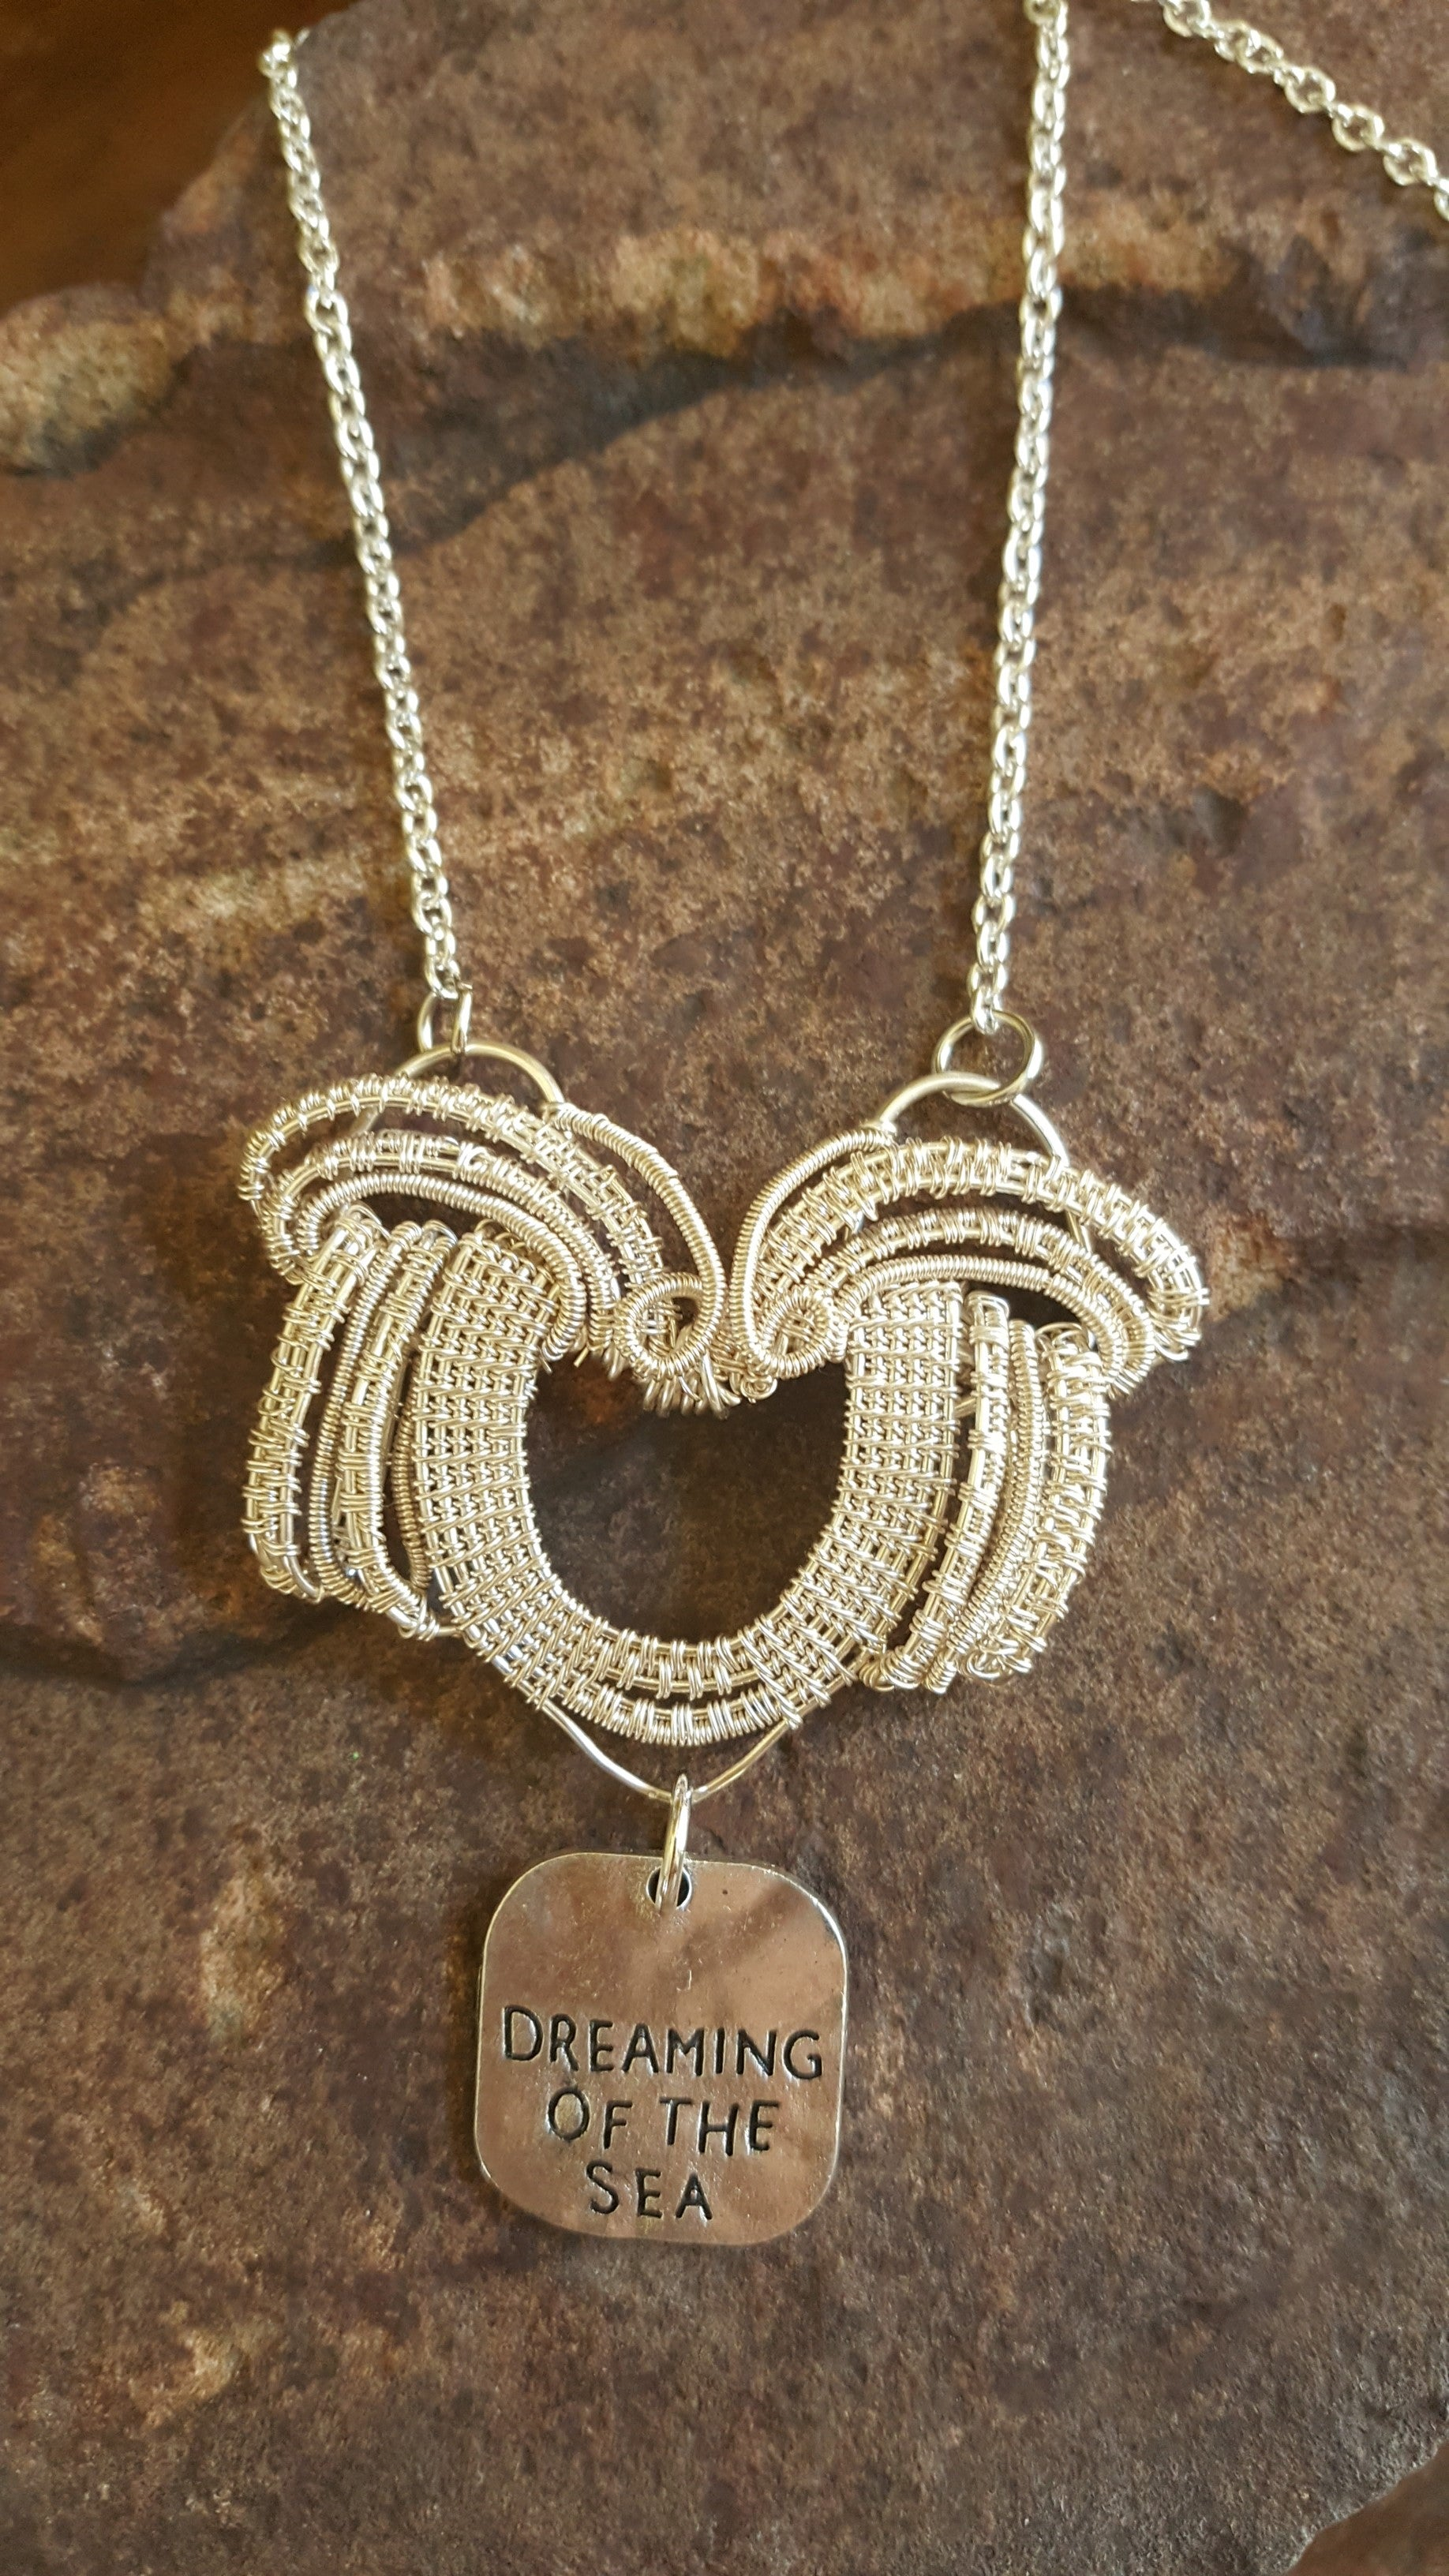 A lovely Dreaming of the Sea woven necklace